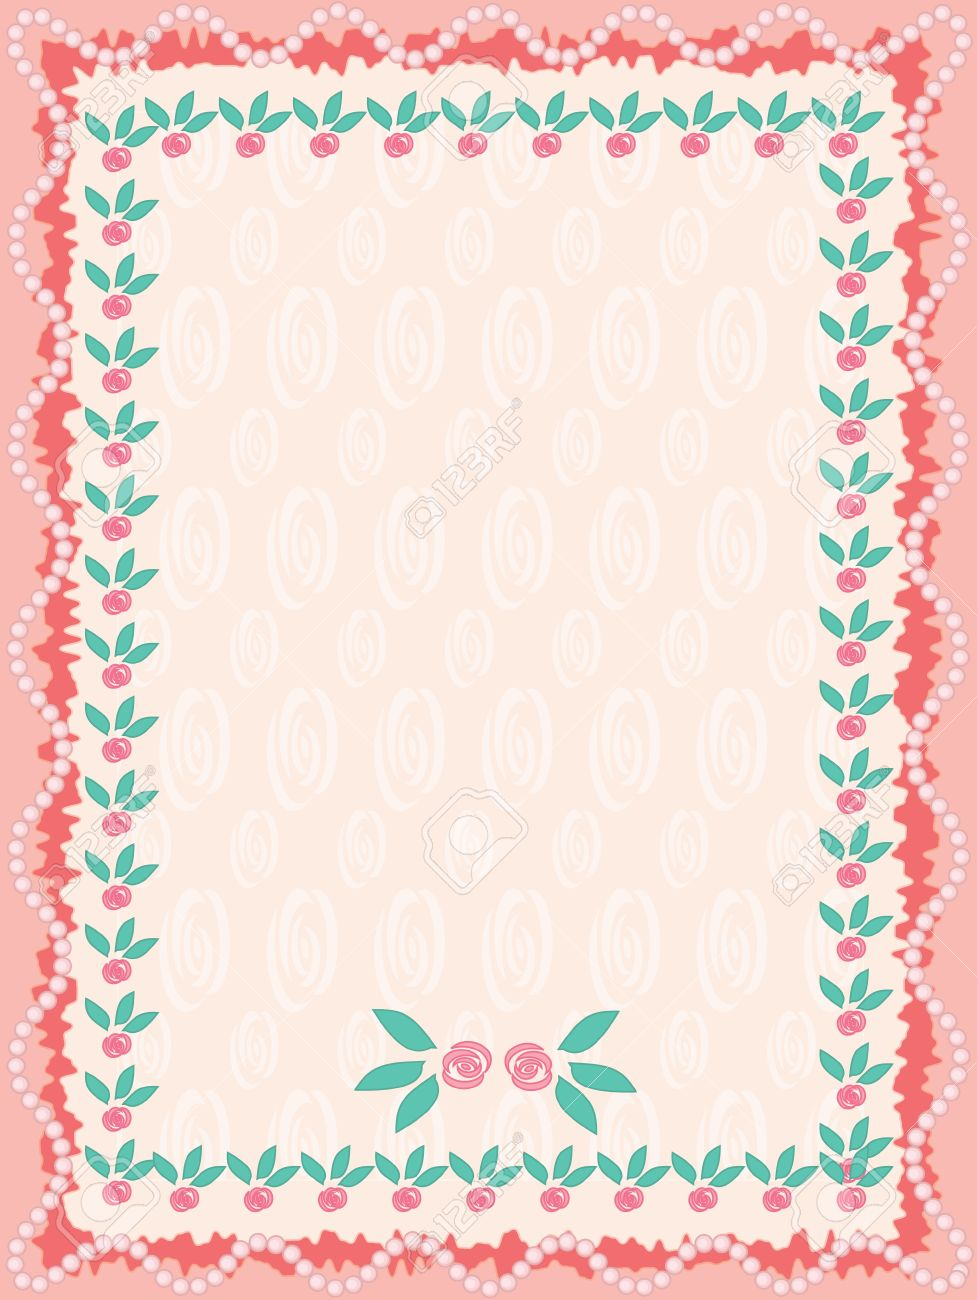 Cute Frame Royalty Free Cliparts, Vectors, And Stock Illustration ...